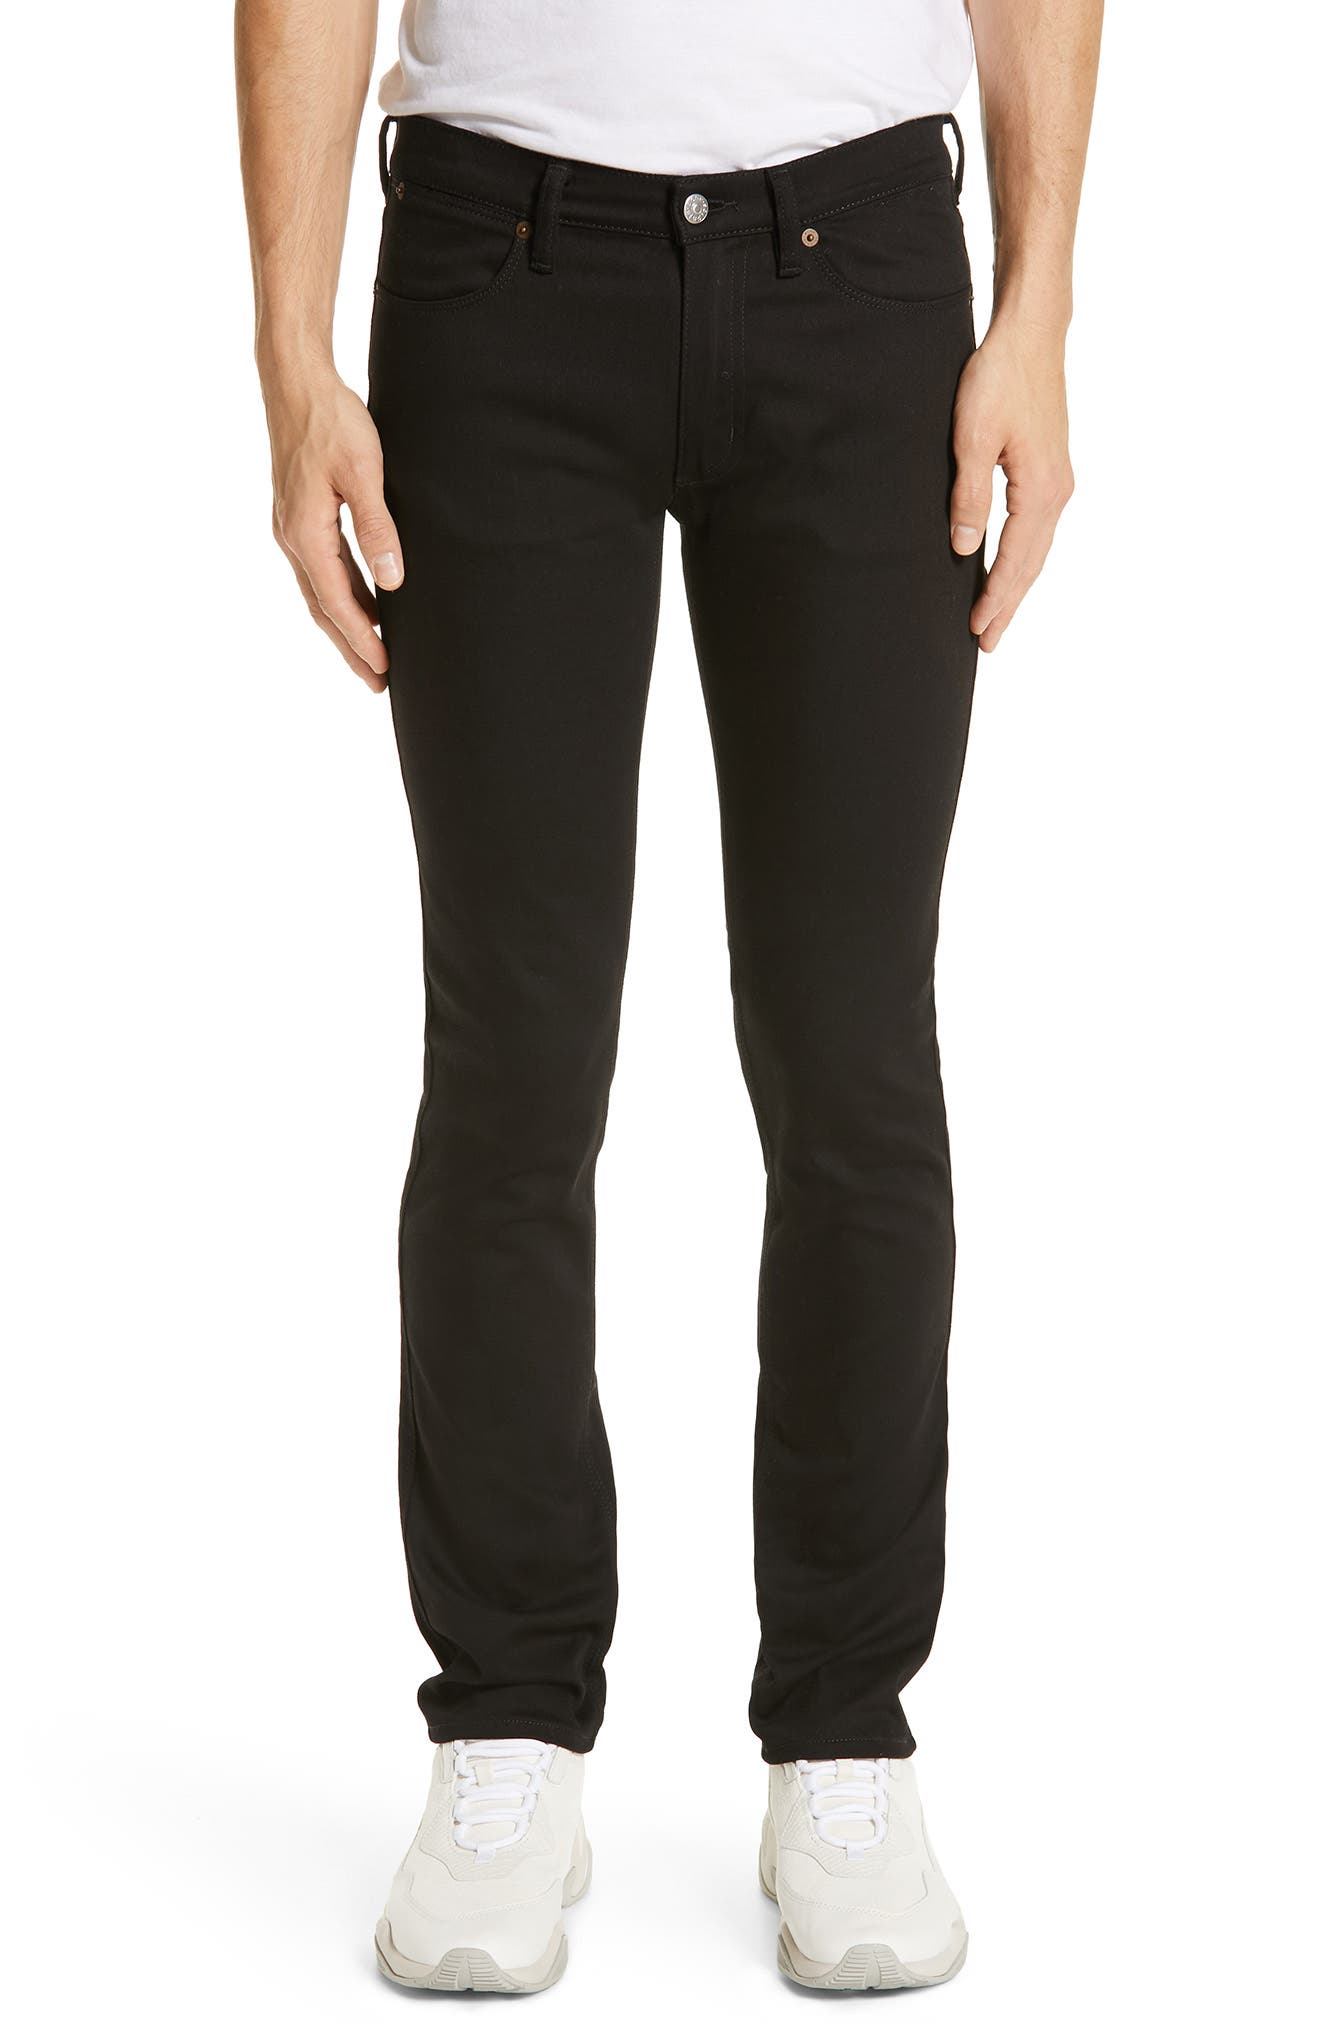 River Used Mamba Skinny Fit Jeans,                             Main thumbnail 1, color,                             BLACK